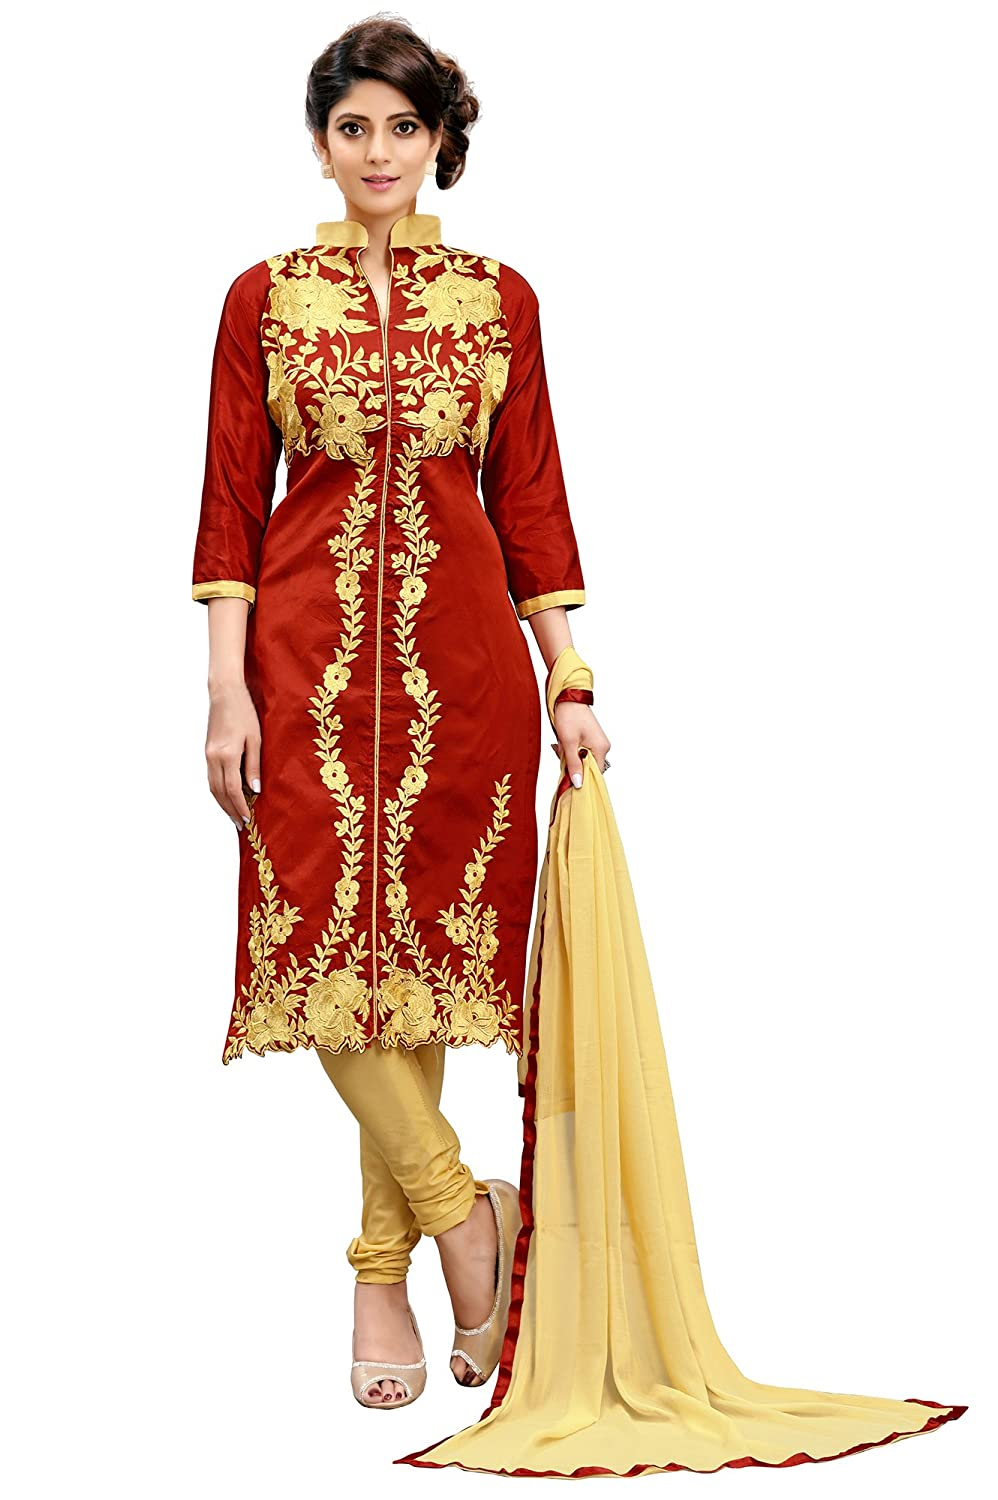 d1da1c32e25d Siddeshwary Fab Women s Red Taffeta Silk Embroidered salwar suits for women  ( Dress Material   Red   Free Size )  Amazon.in  Clothing   Accessories